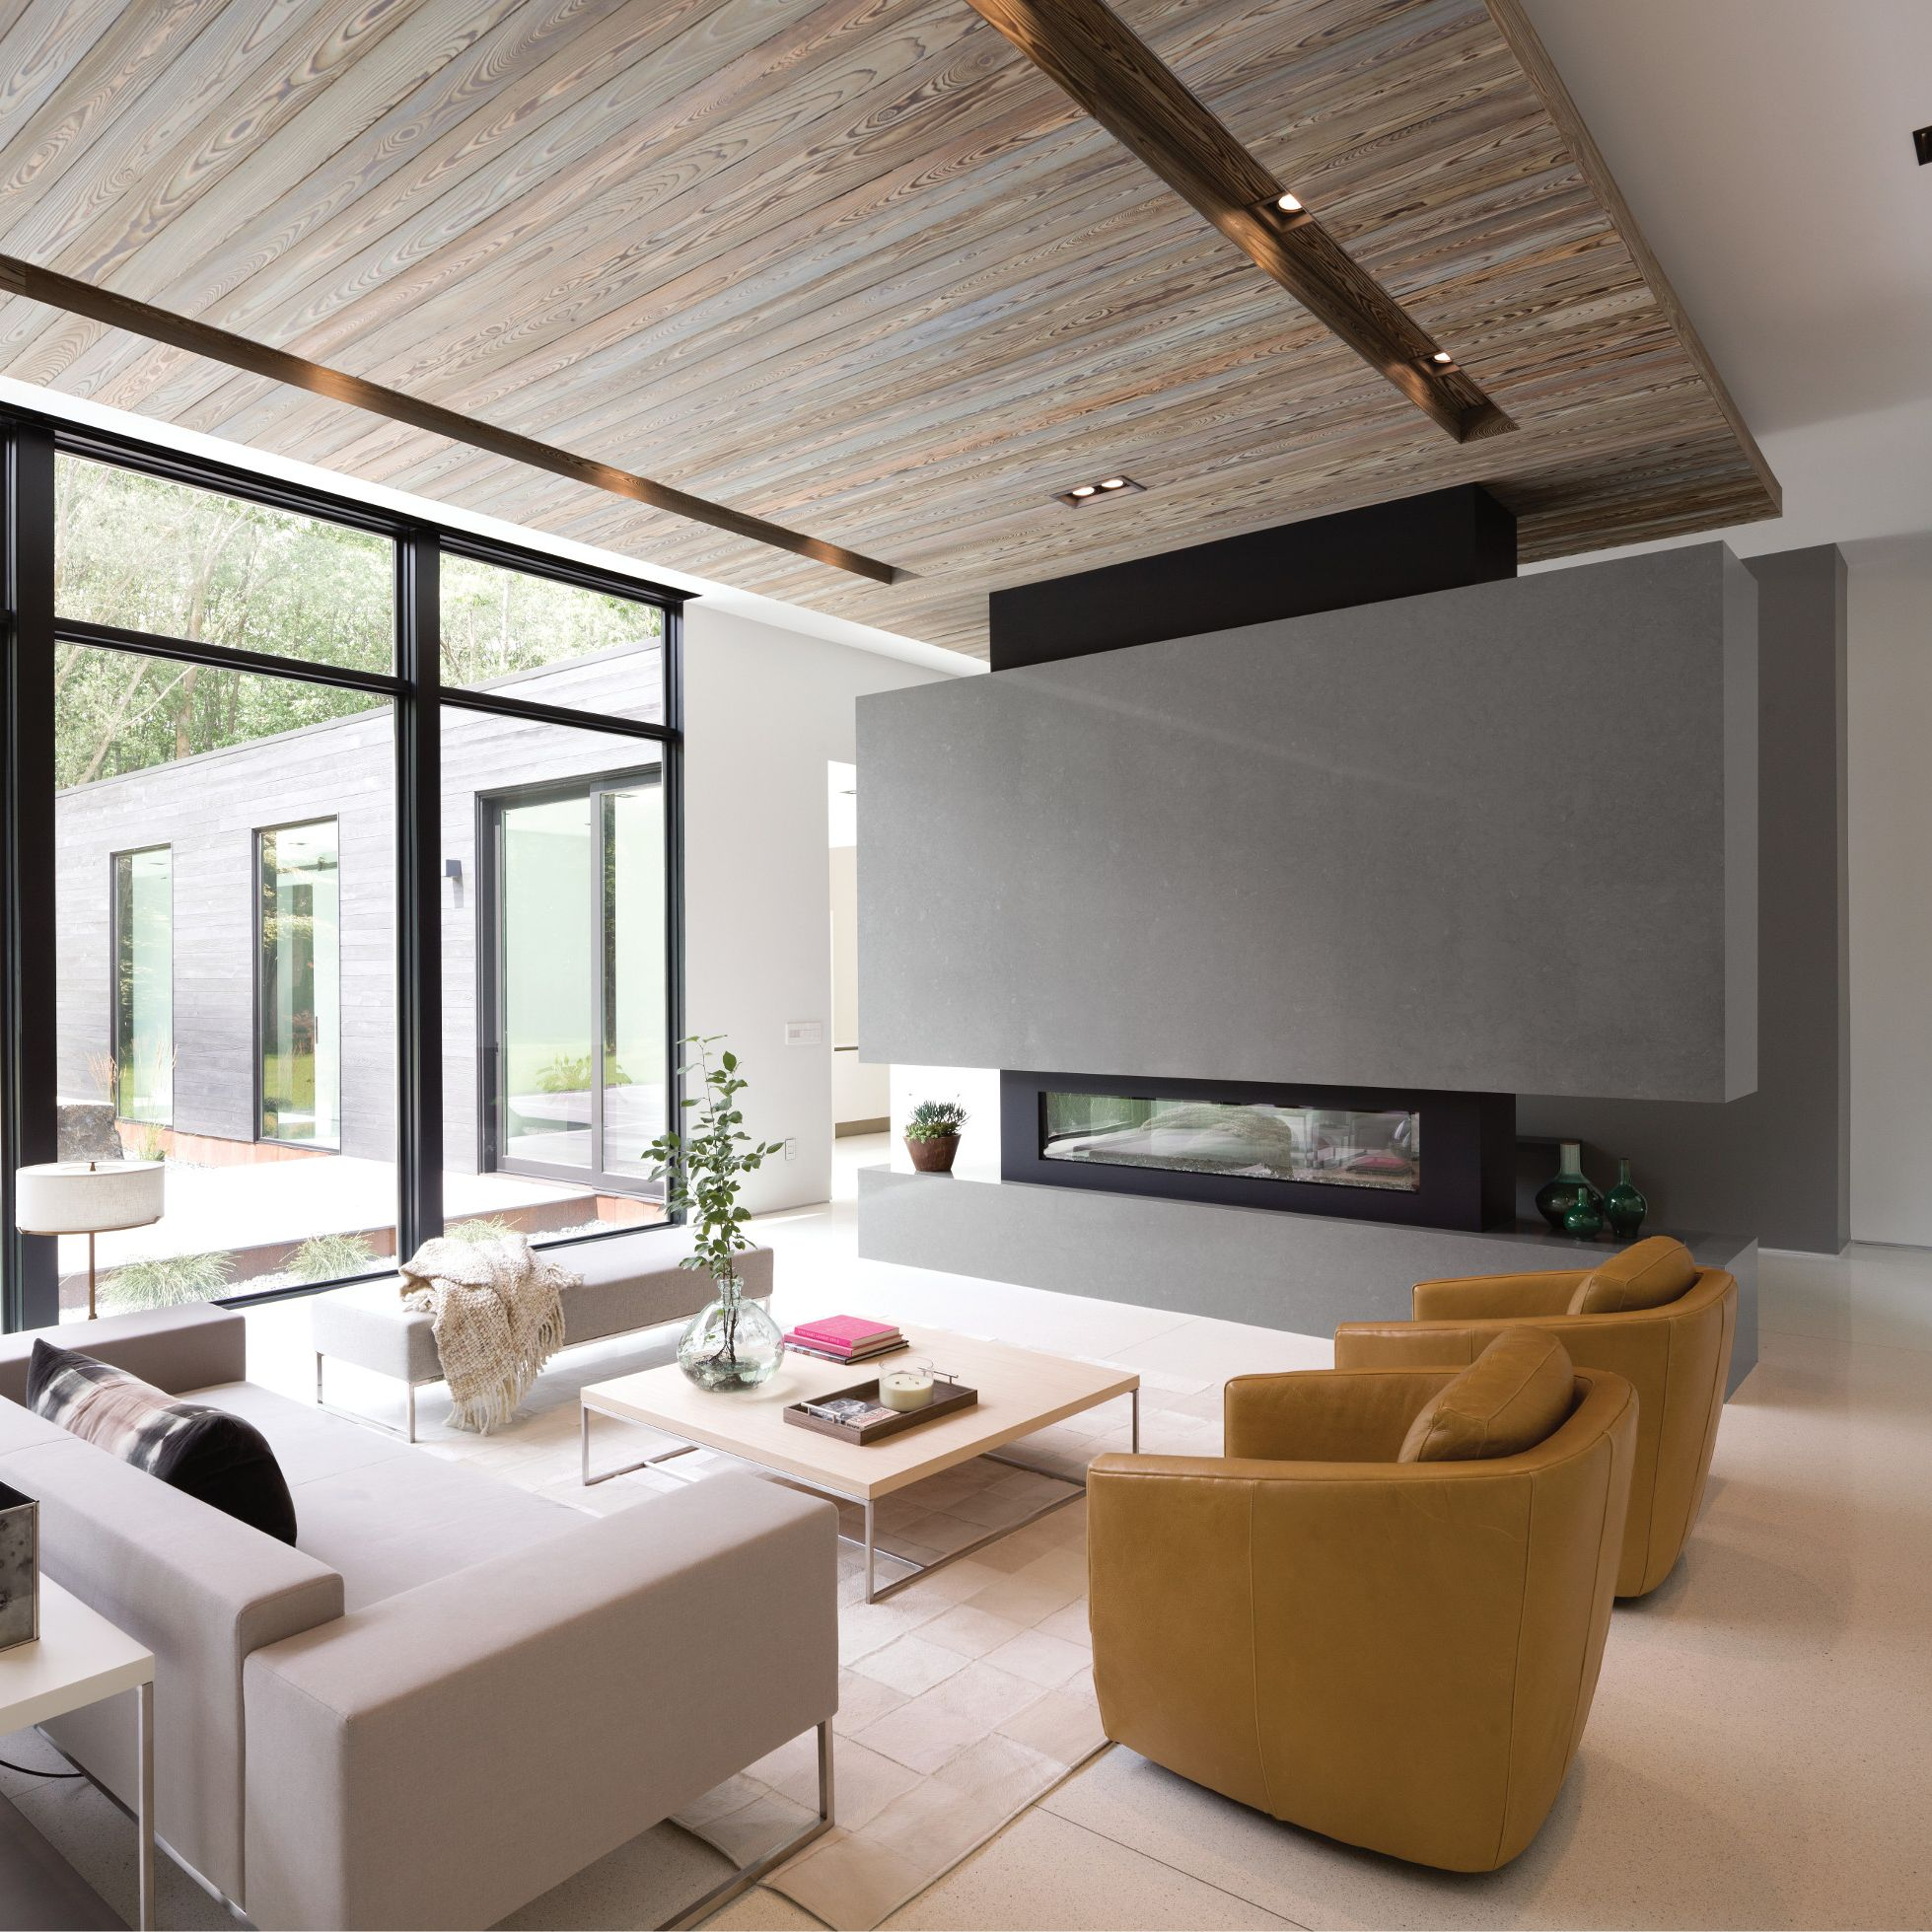 A picture containing indoor, wall, living, ceiling  Description automatically generated